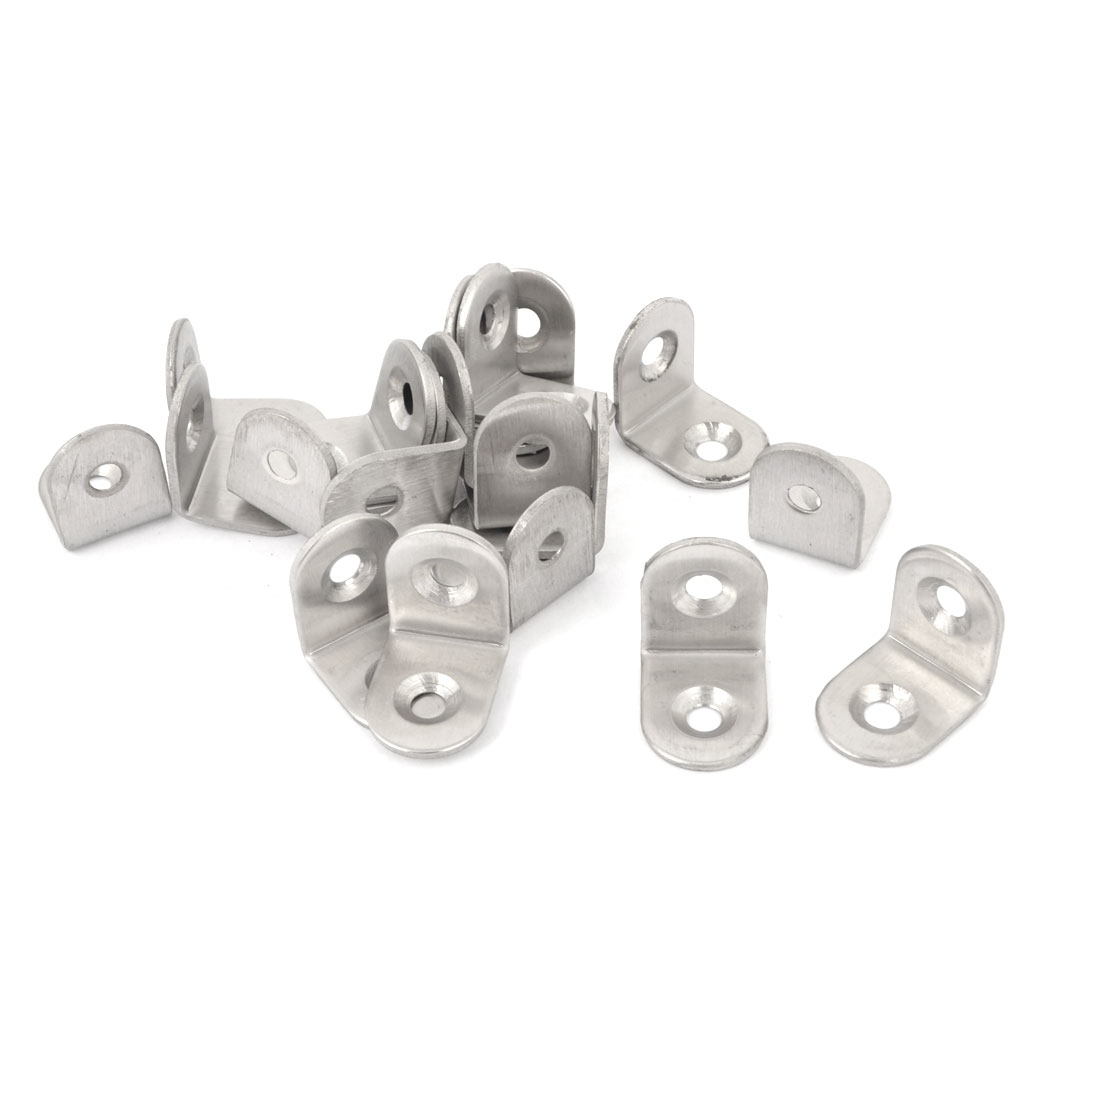 20Pcs L Shaped Shelf Support Corner Brace Right Angle Bracket 20mm x 20mm